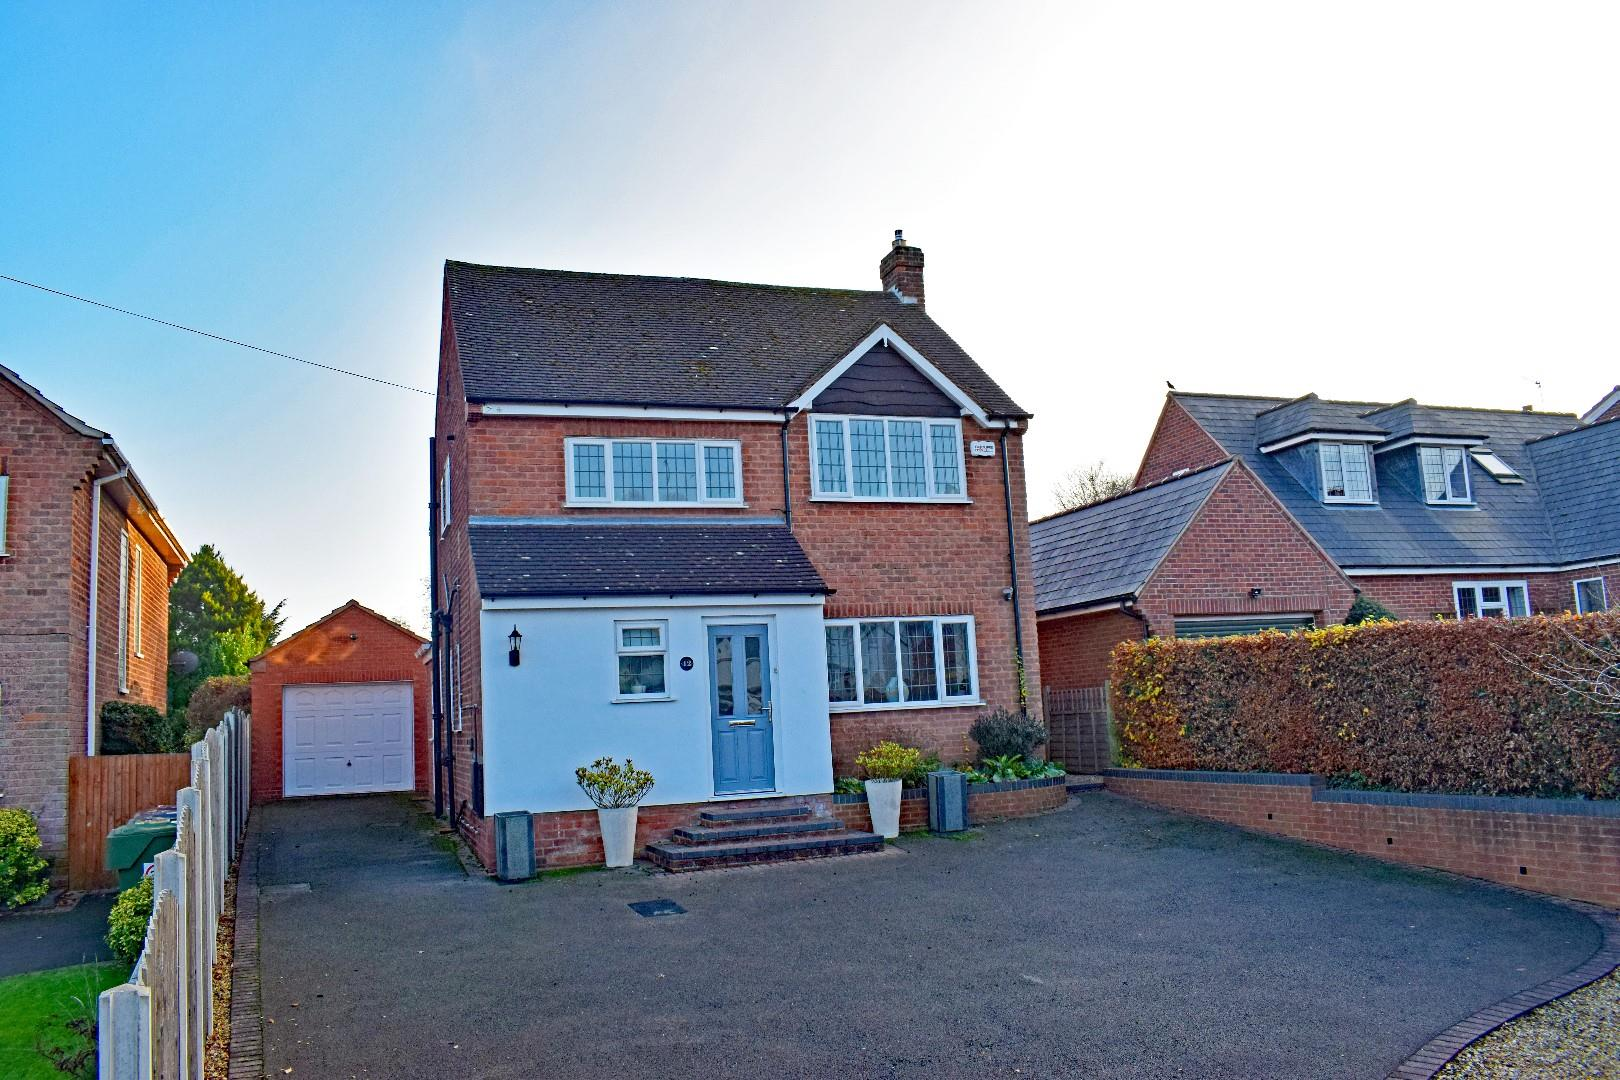 42 Sandhills Lane, Barnt Green, B45 8NX